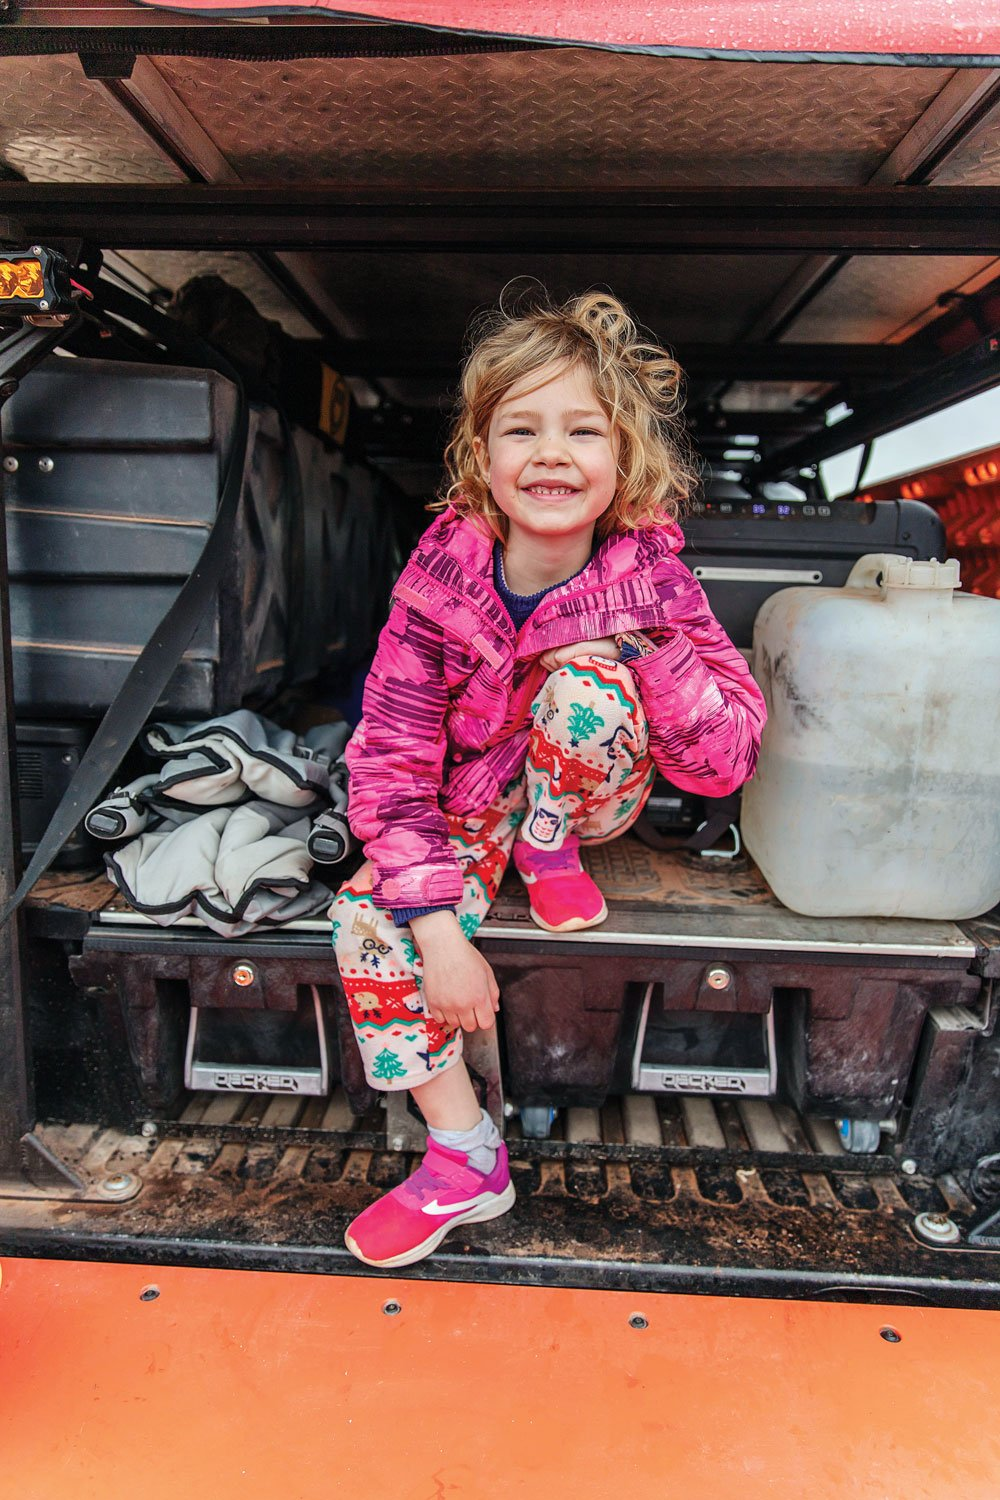 Hoglund's daughter sits in the back of the Tacoma TRD